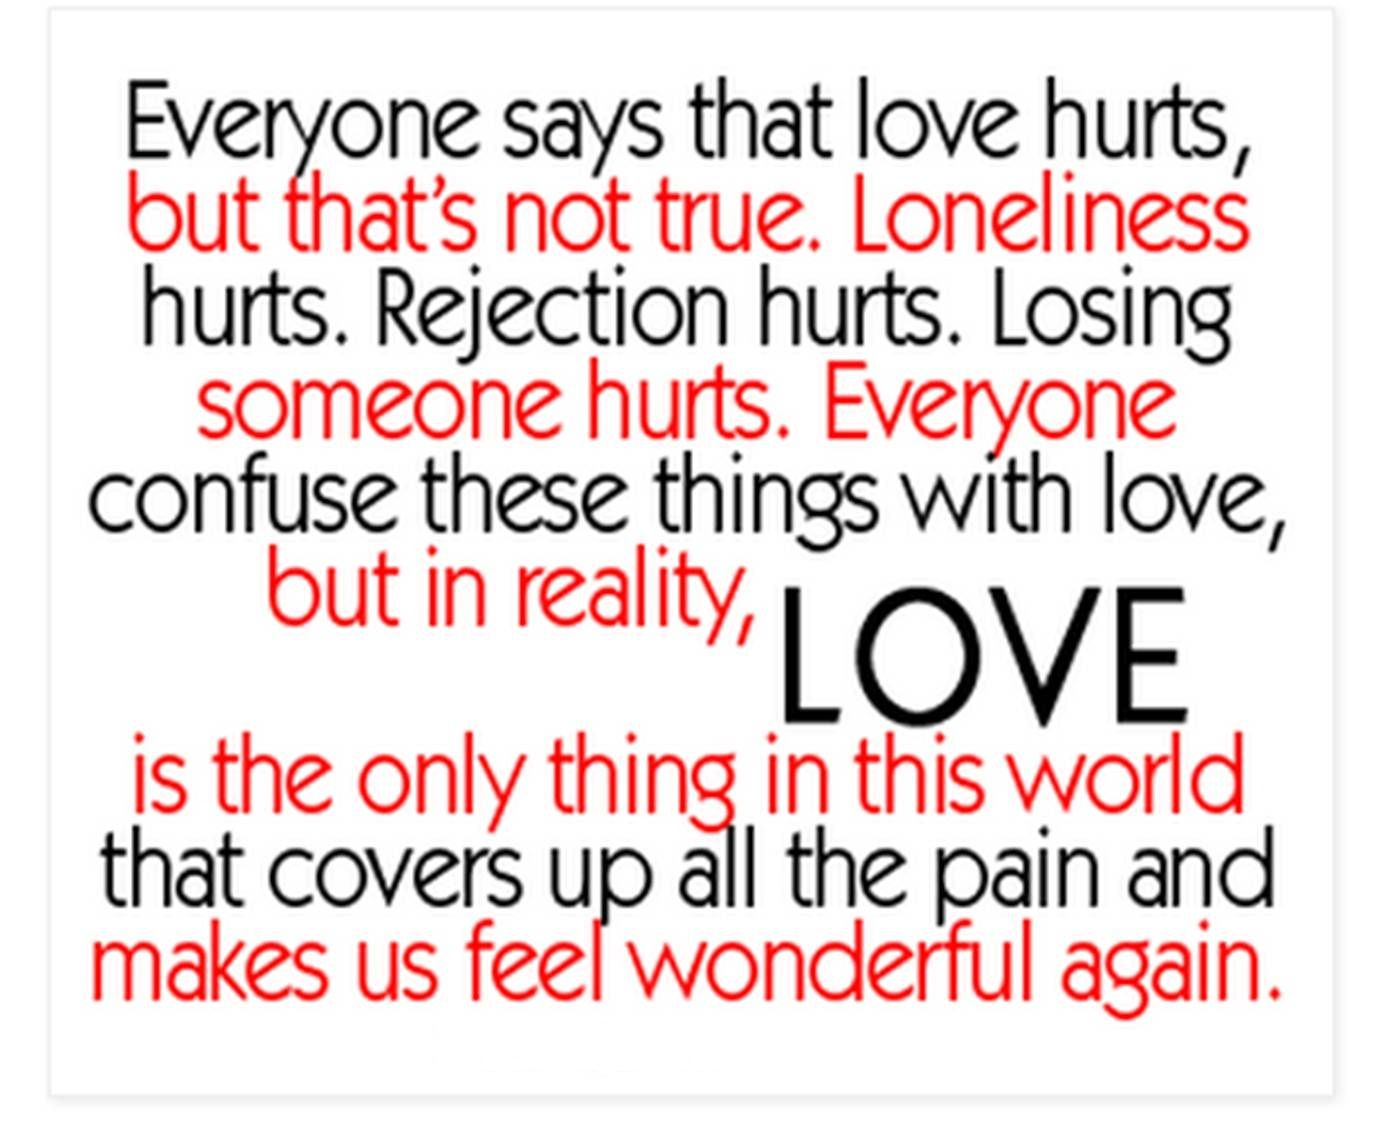 Quotes About Loving Someone Quotesaboutlovingsomeoneawesomelovequotes19191 1377